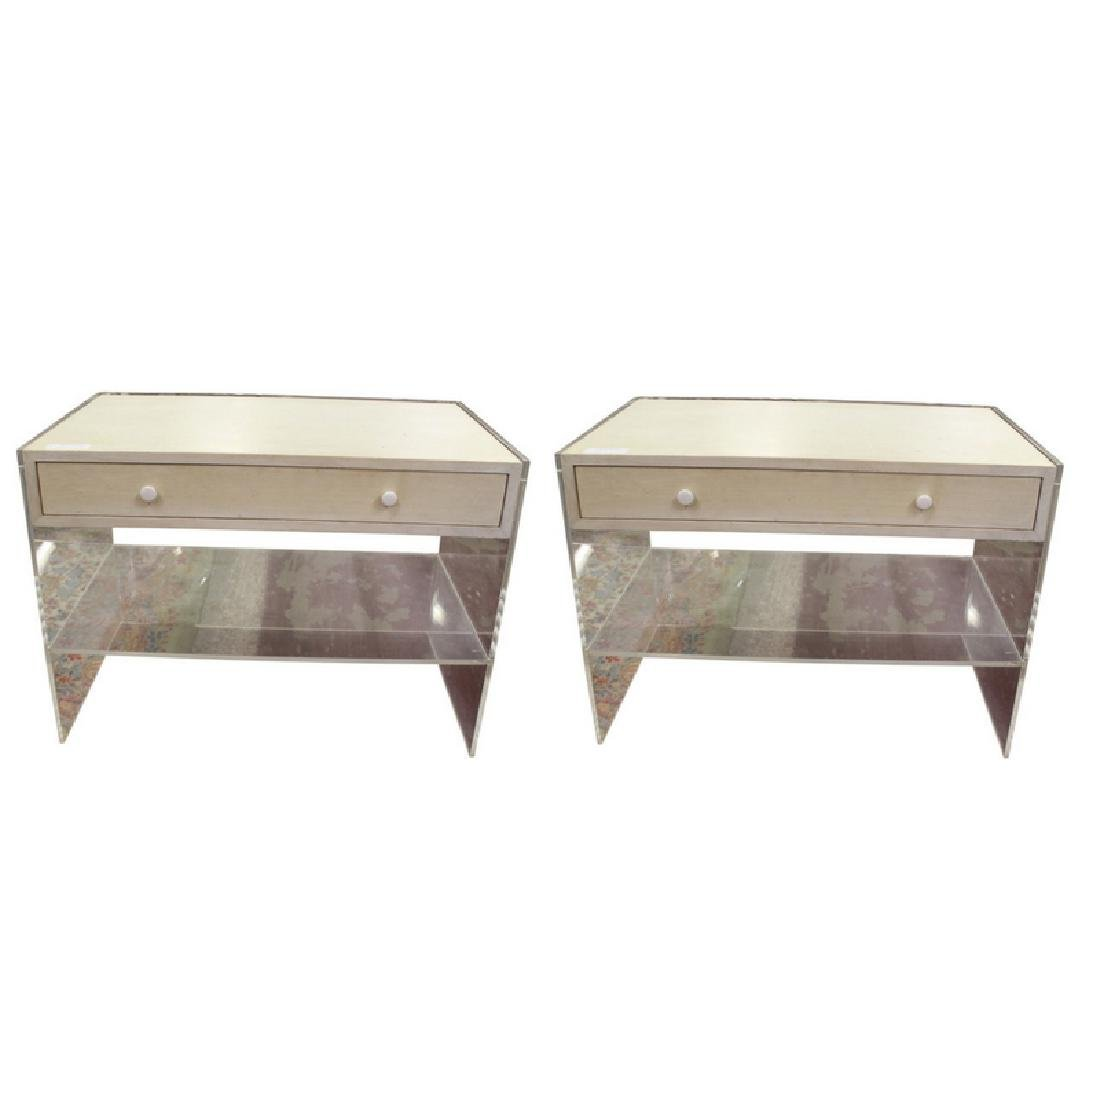 Pair of Lucite End Tables/Night Stands